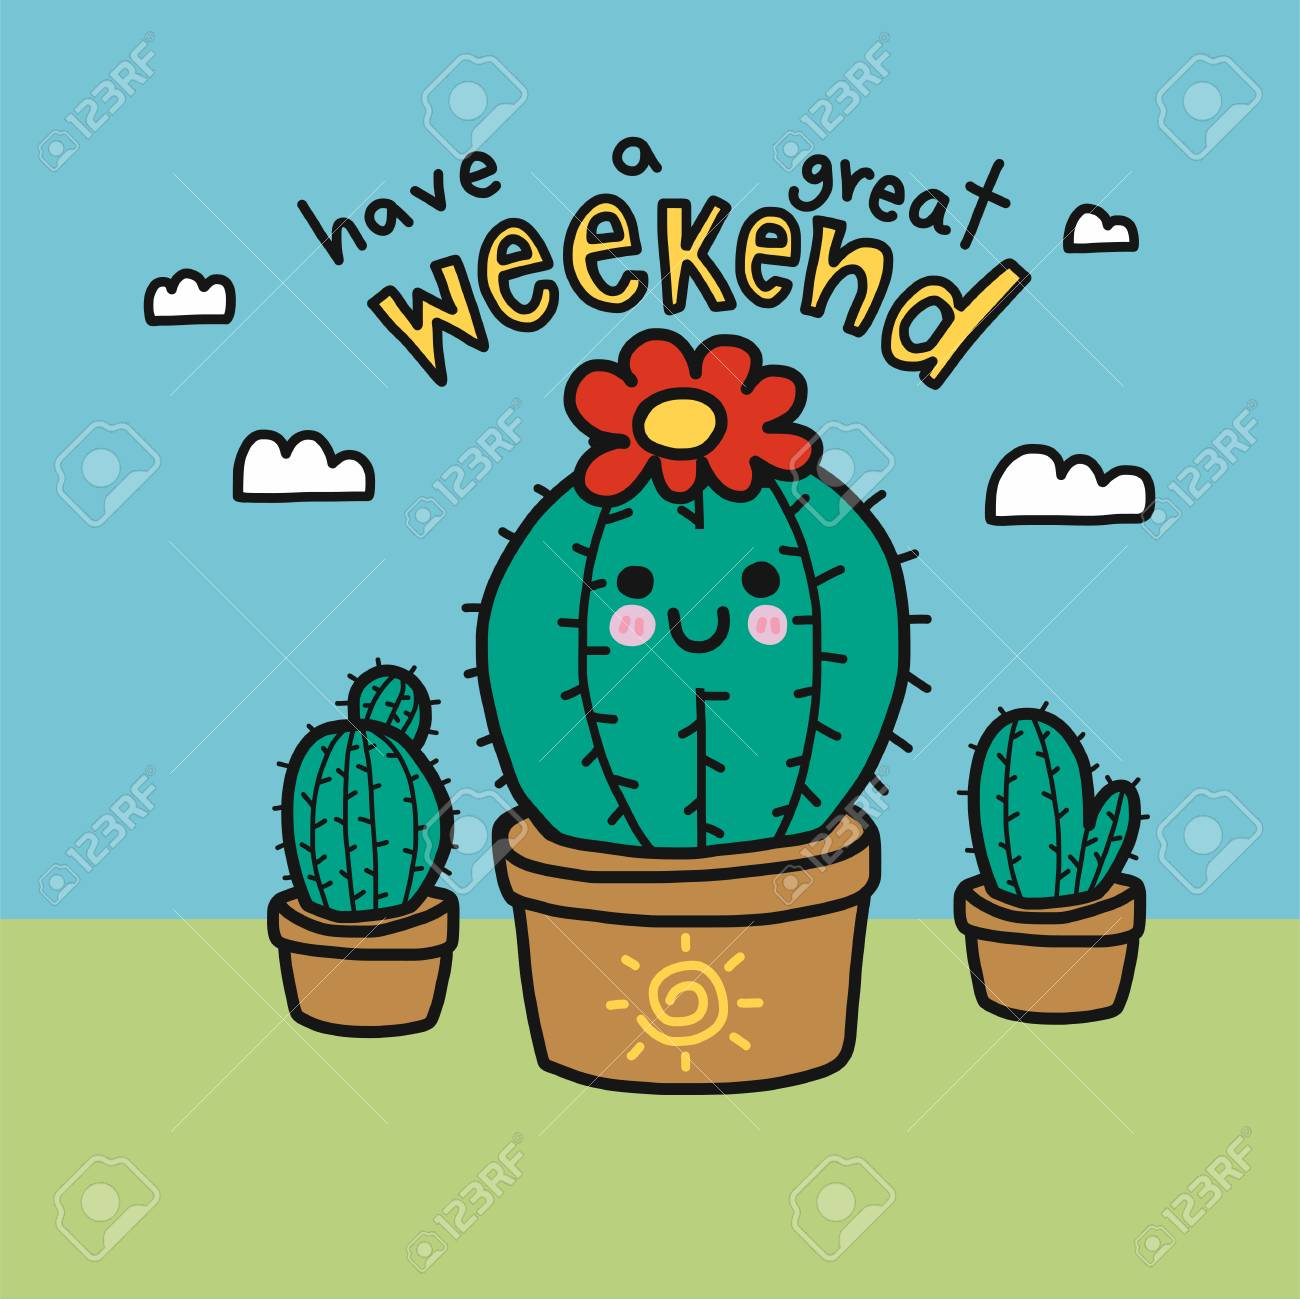 Have A Great Weekend Word And Cute Cactus Cartoon Vector